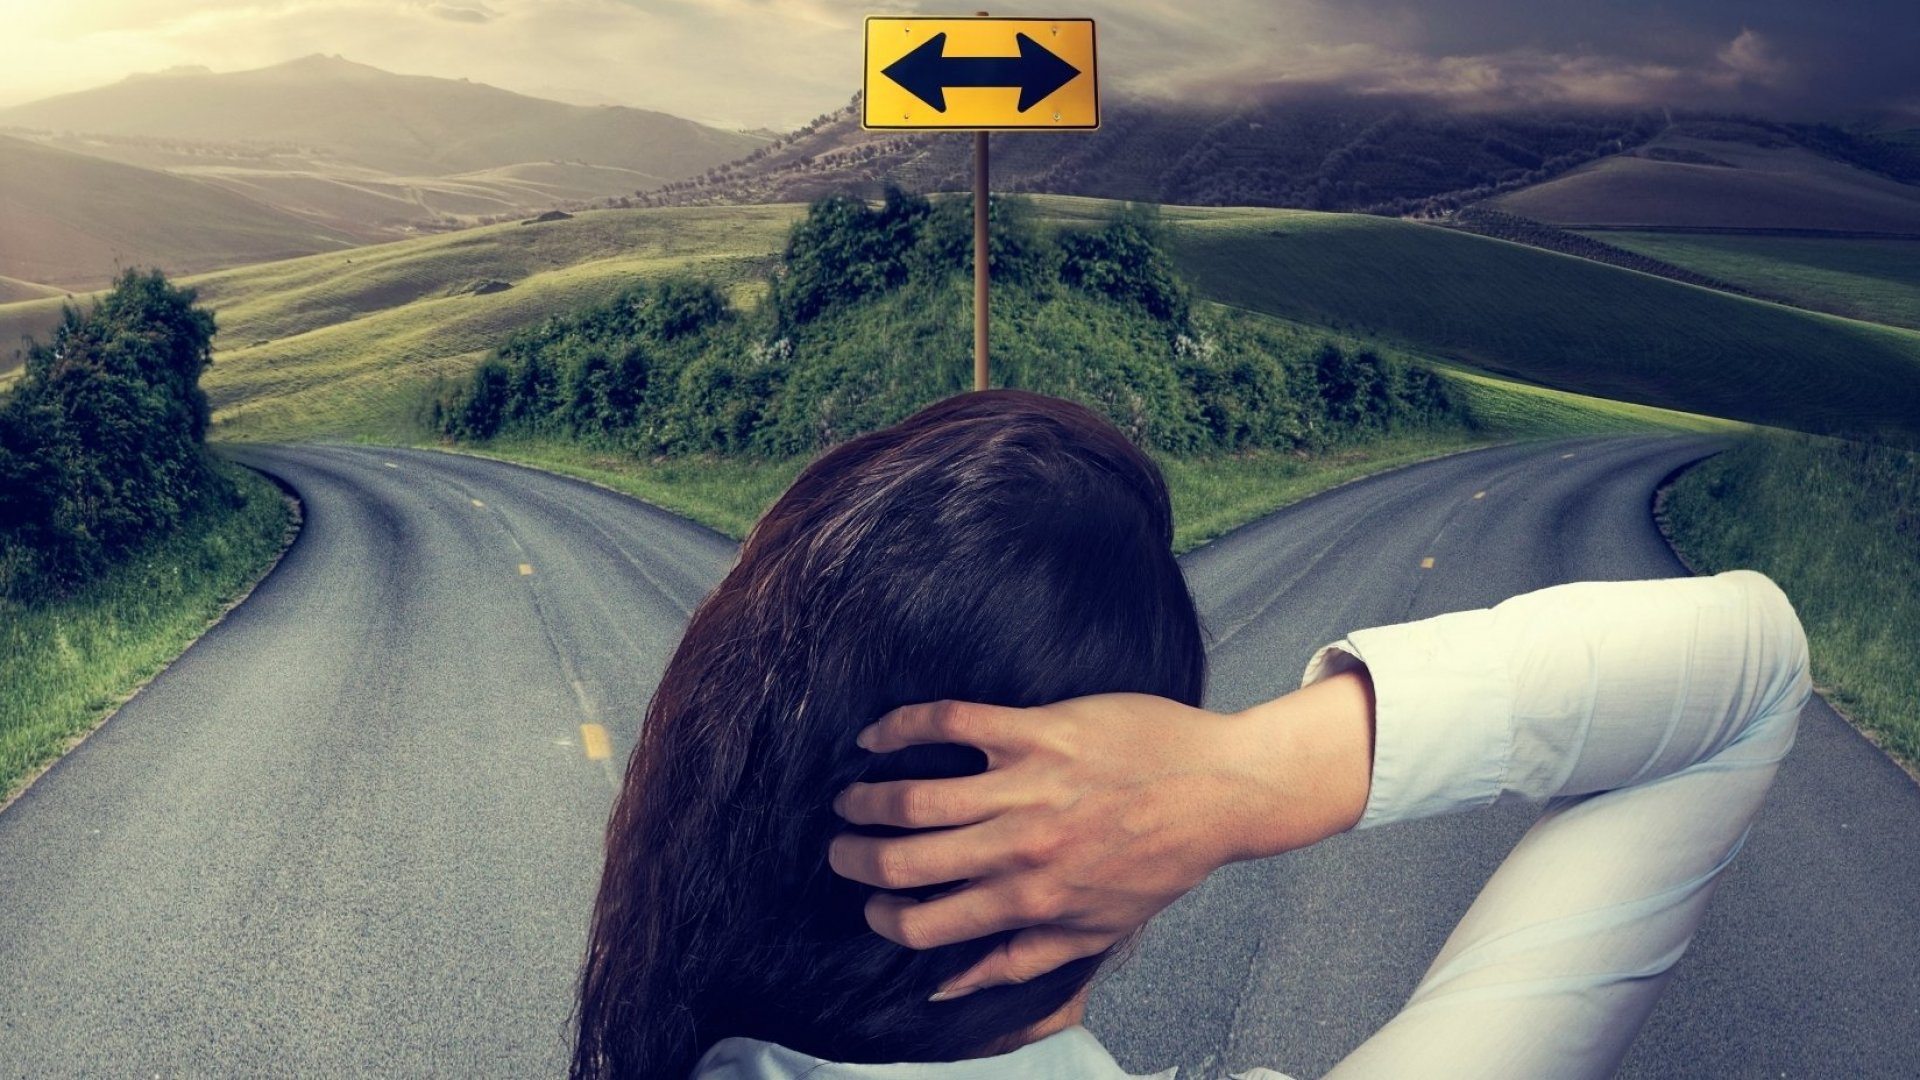 Stanford Decision Engineer Shares 5 Mistakes People Make When Facing Hard Choices